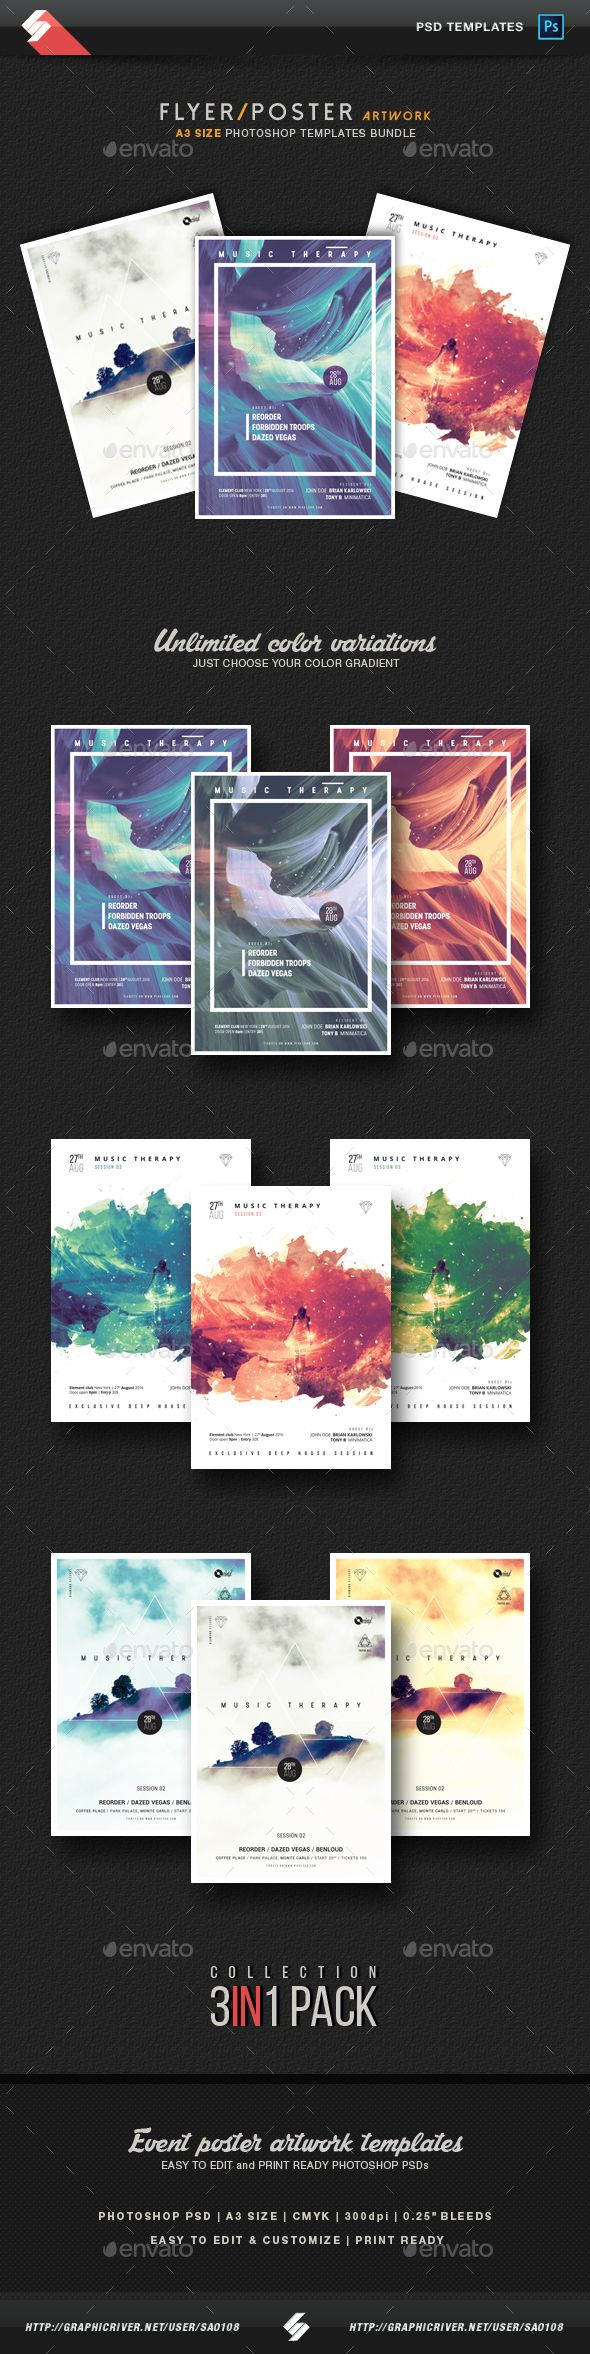 Poster design zeixs - Music Therapy Collection Party Flyer Poster Templates Bundle